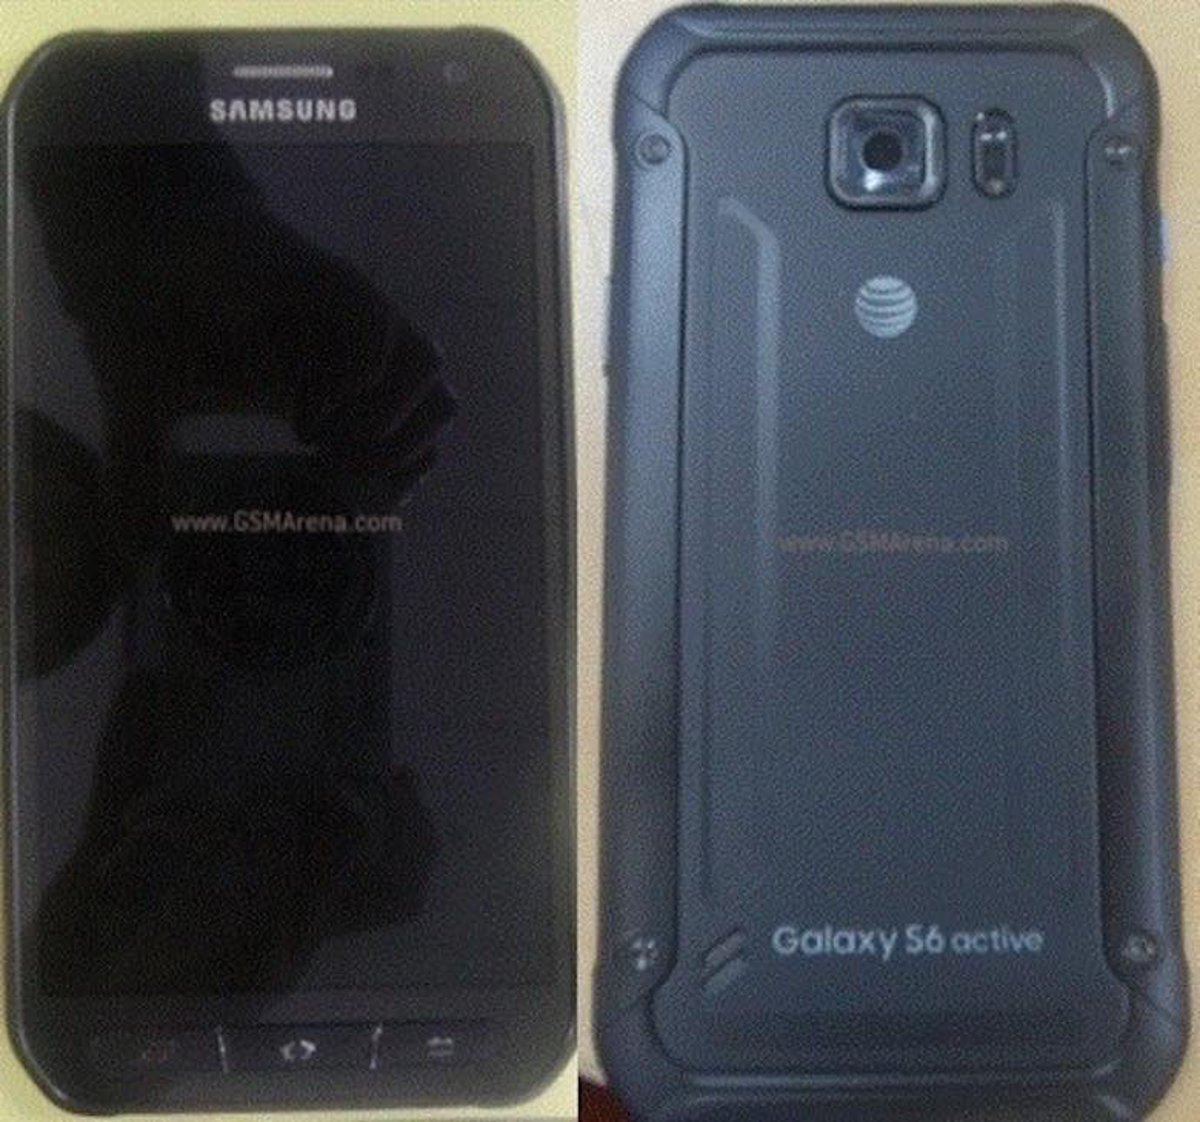 Samsung Galaxy S6 Active Leaked Image